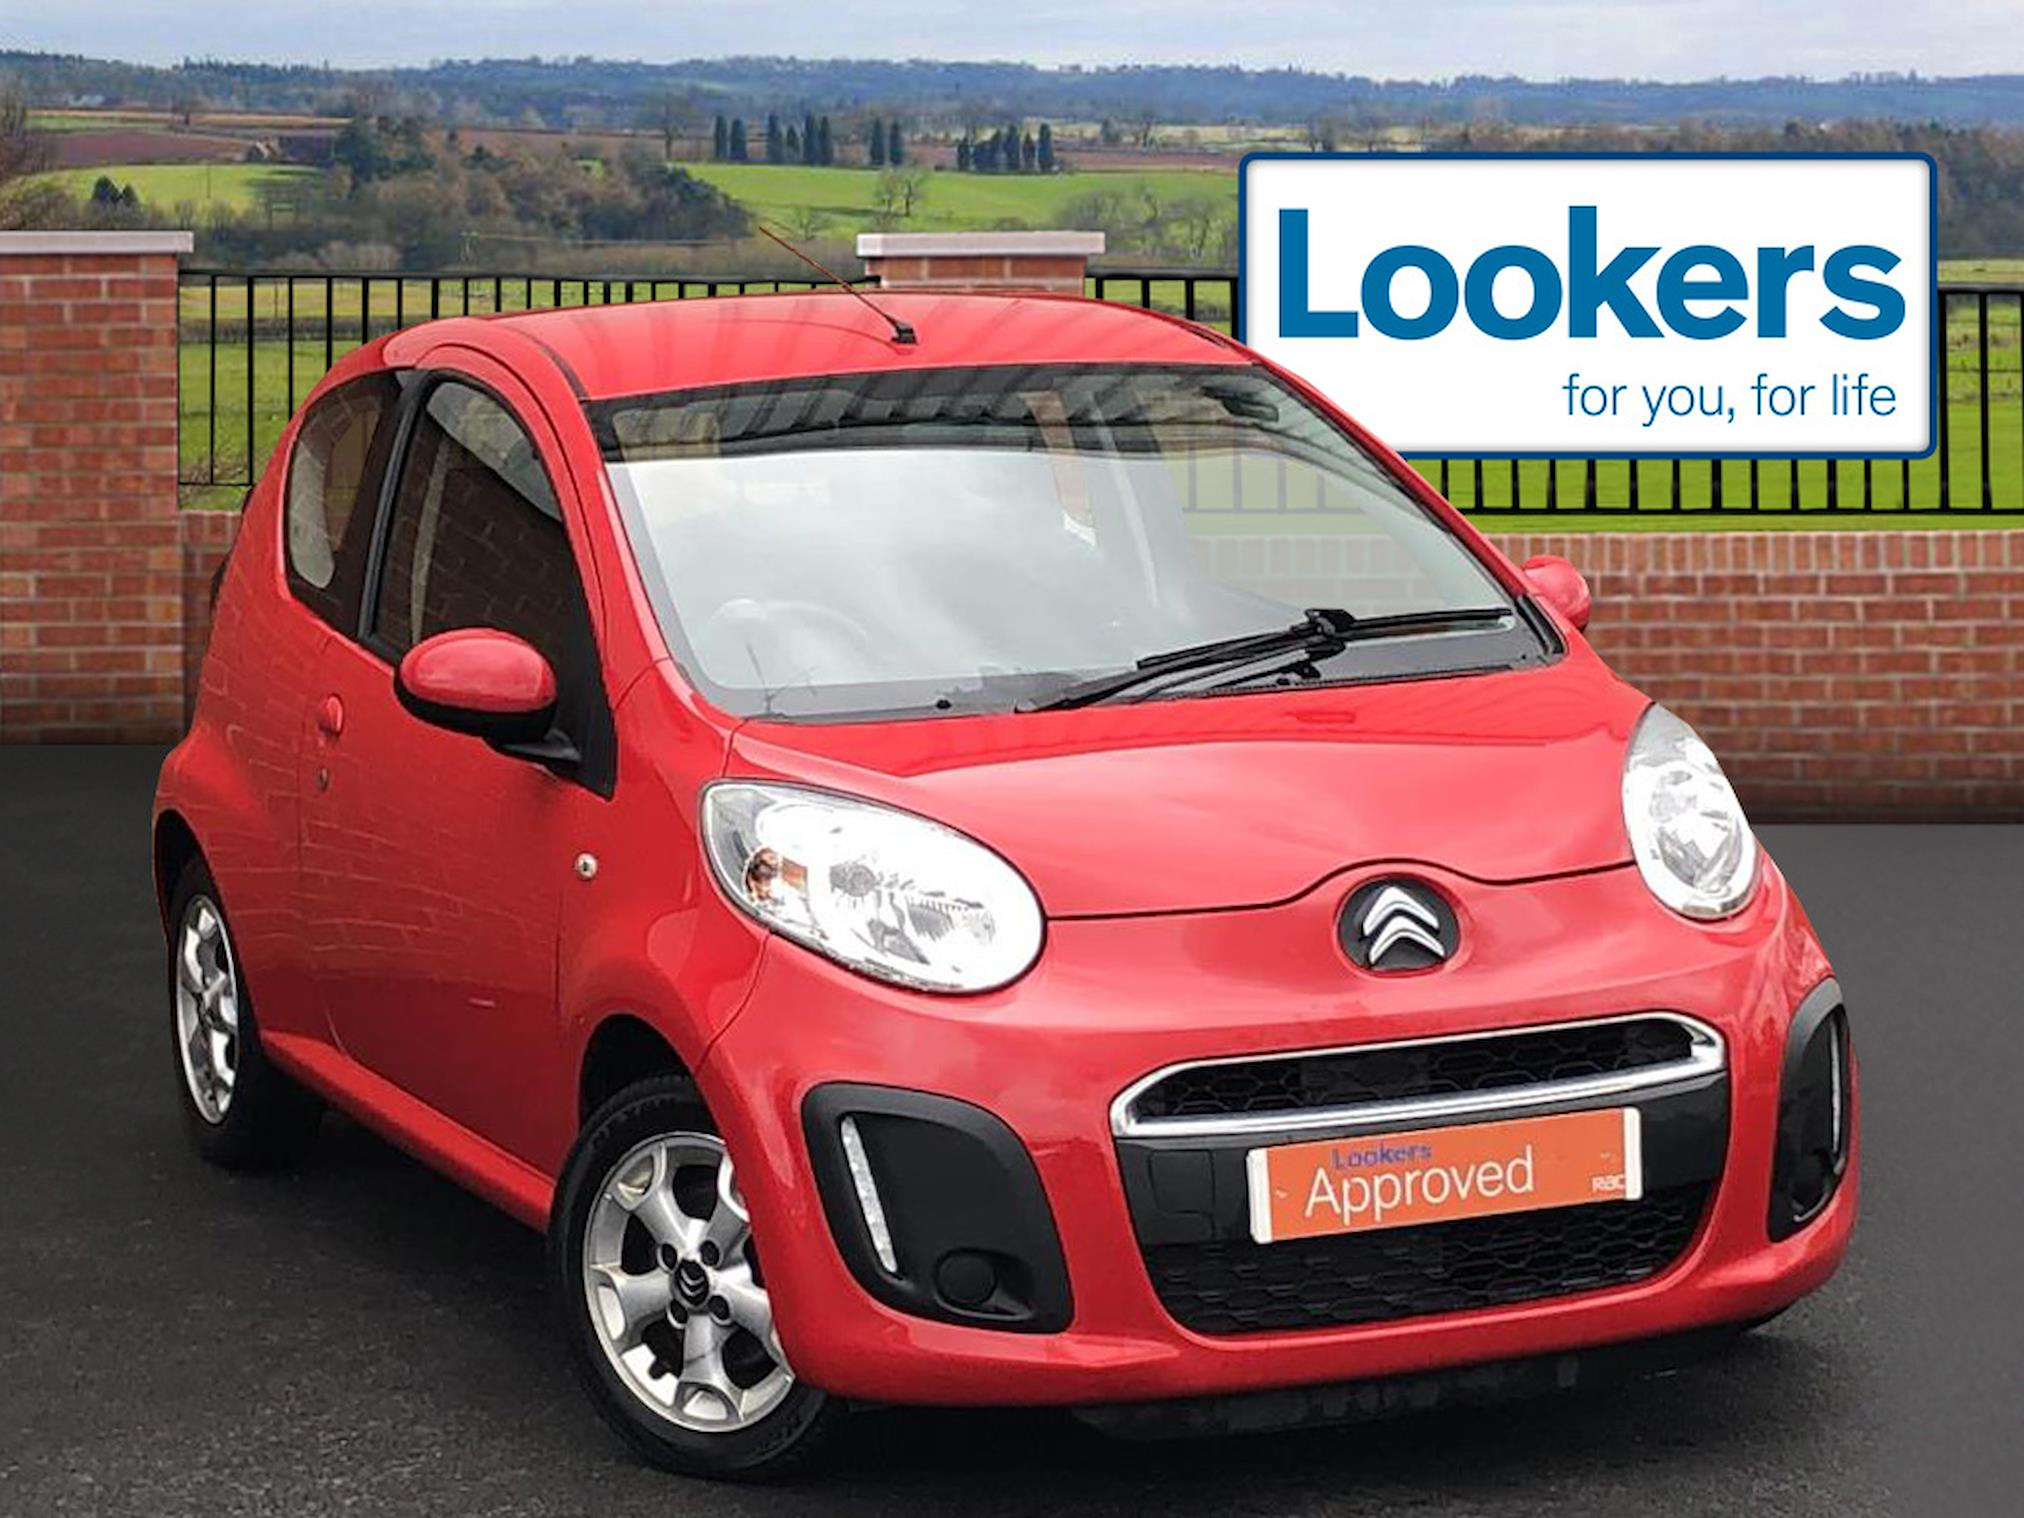 Used C1 CITROEN 1 0I Edition 3Dr 2013 | Lookers